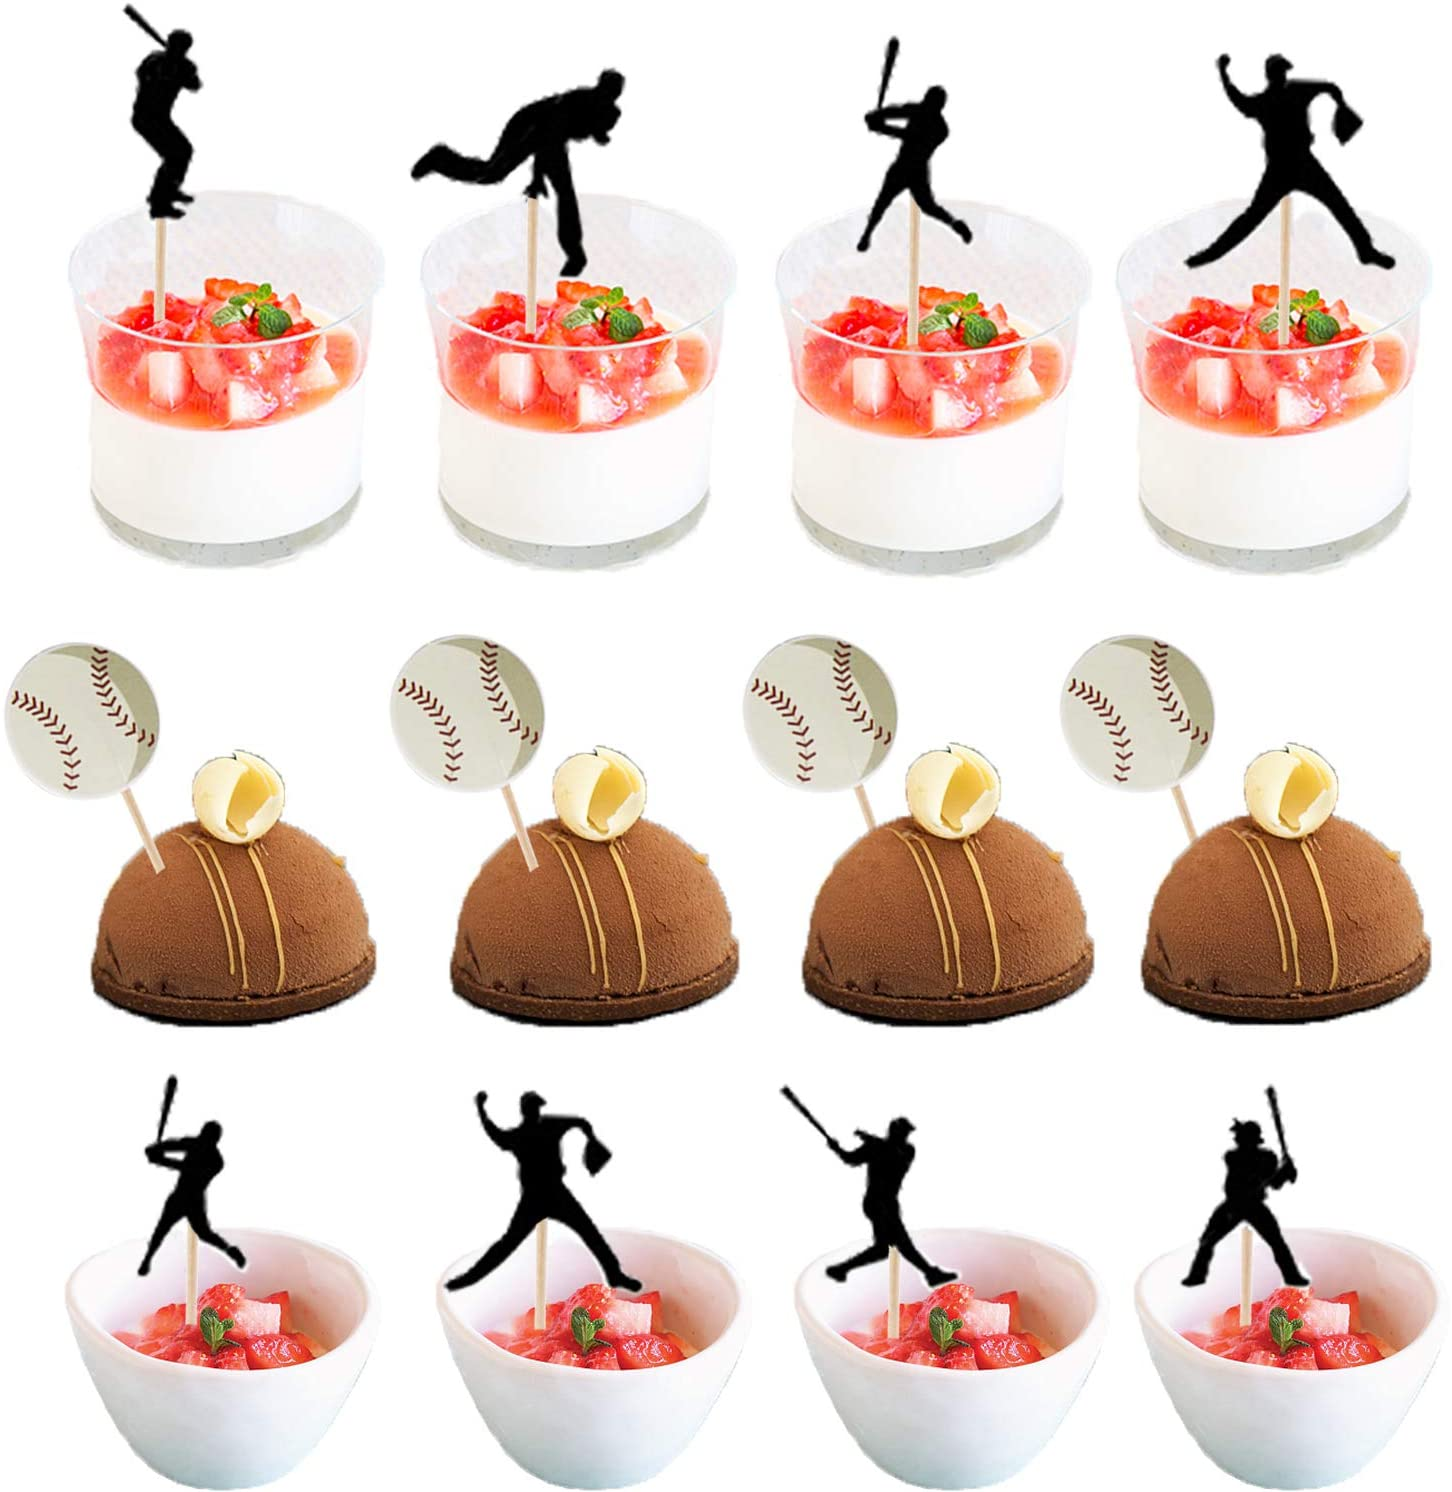 48PCS baseball Action Cake/Cupcake Toppers - Basketball/Sport Birthday Party Decorations Supplies Favors Cake Decor